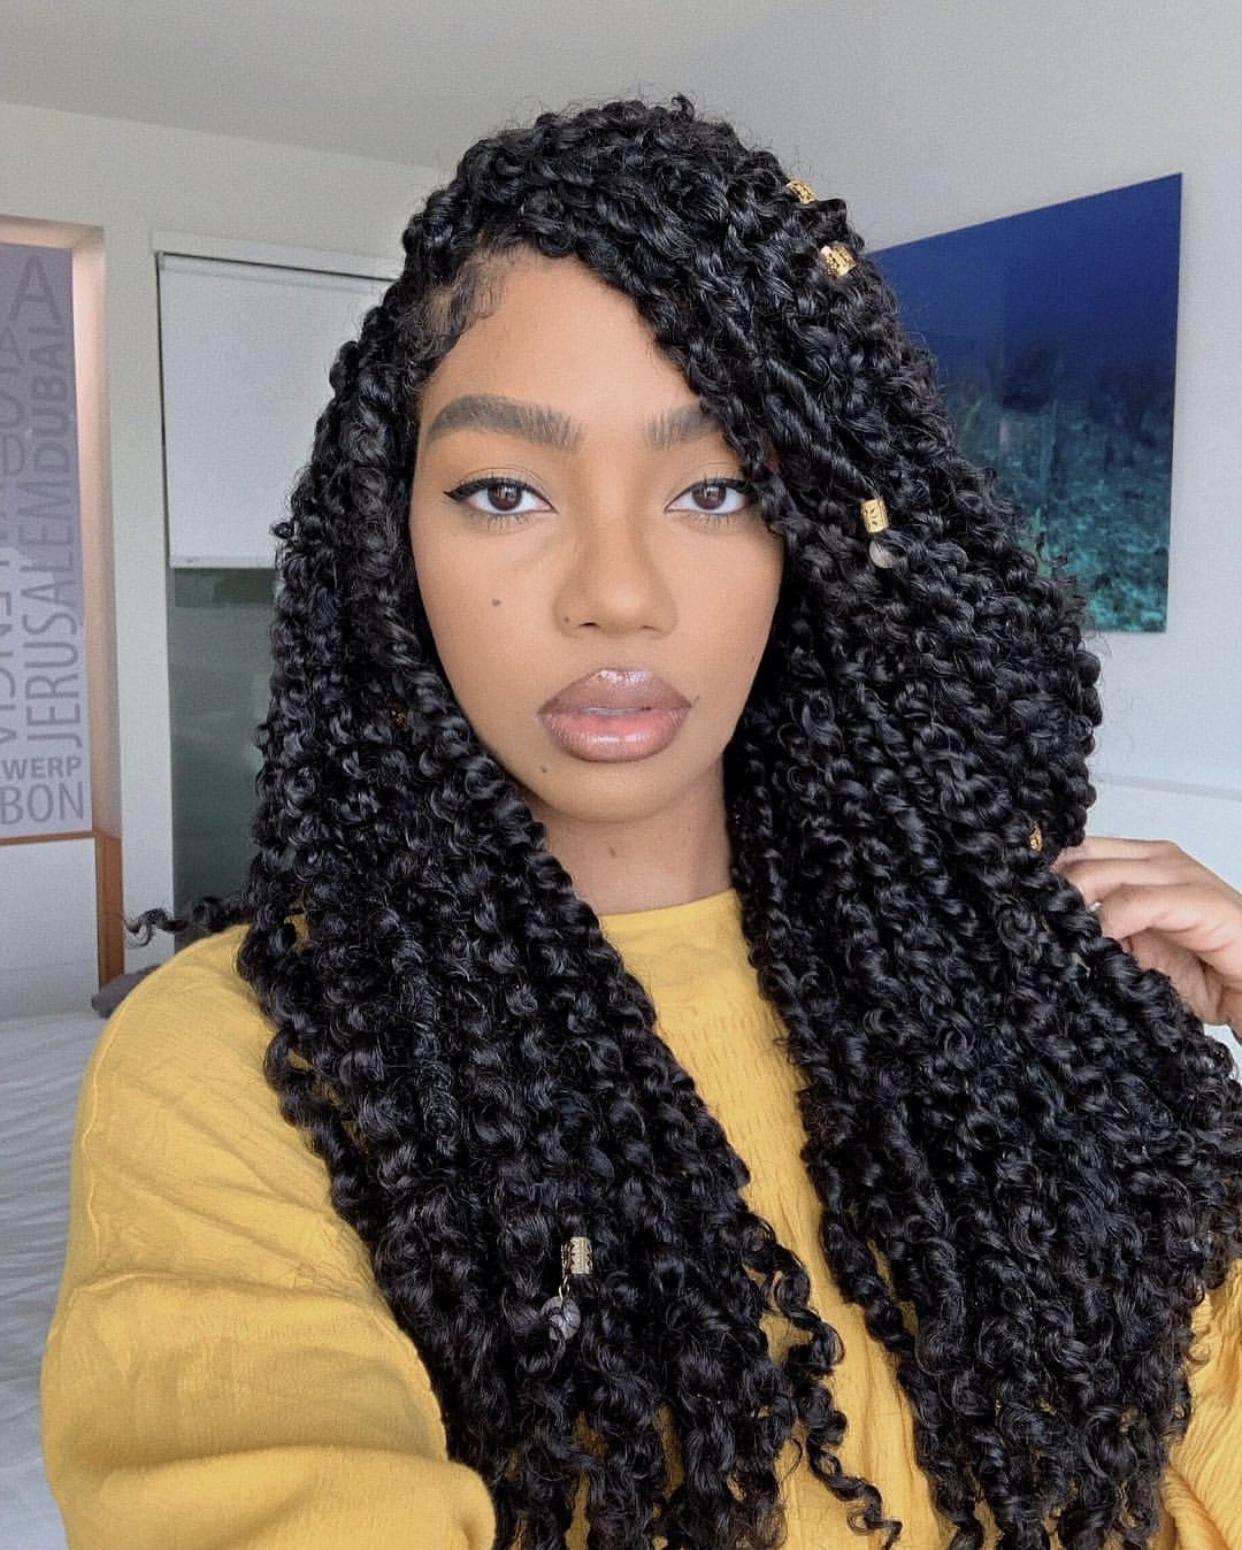 10 Passion Twist Styles To Rock Right Now – Essence Intended For Most Popular Purple Passion Chunky Braided Hairstyles (Gallery 12 of 20)